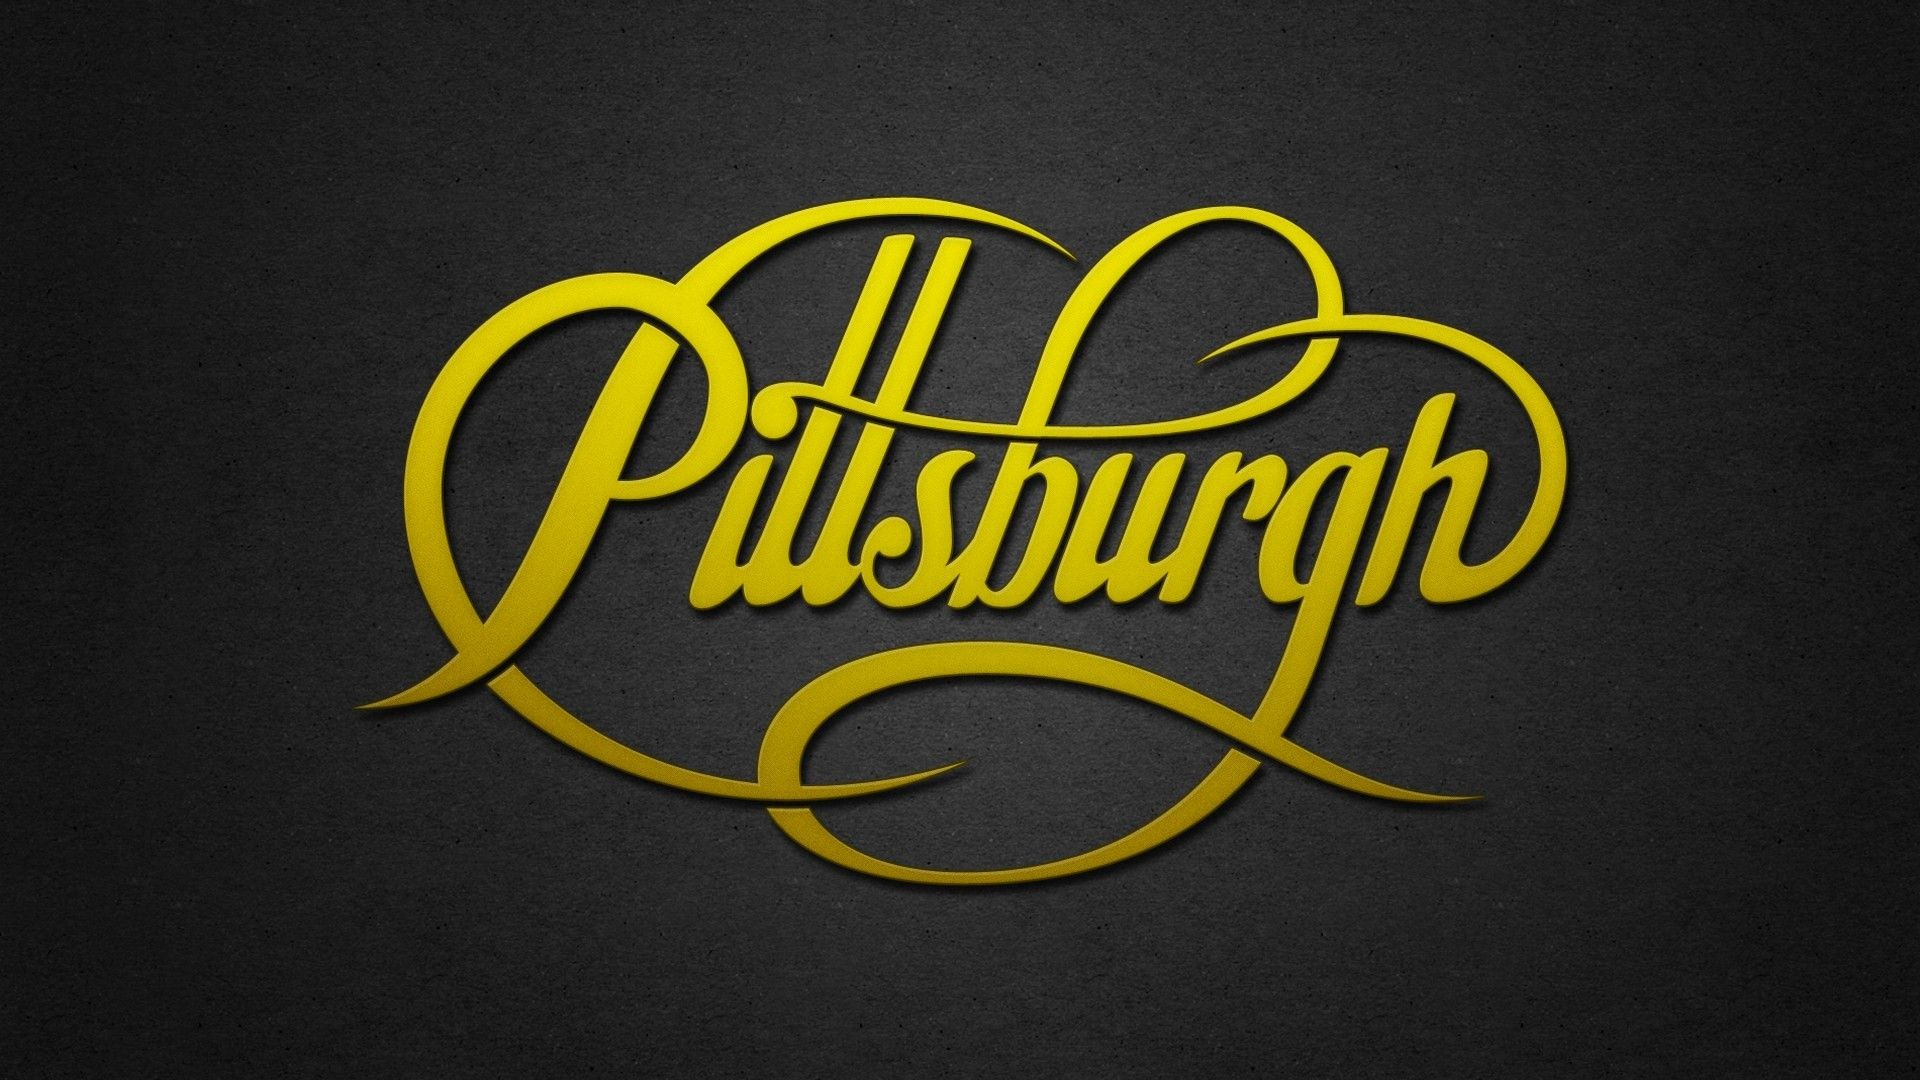 Res: 1920x1080, Wallpapers HD Pittsburgh Steelers | Best NFL Wallpapers